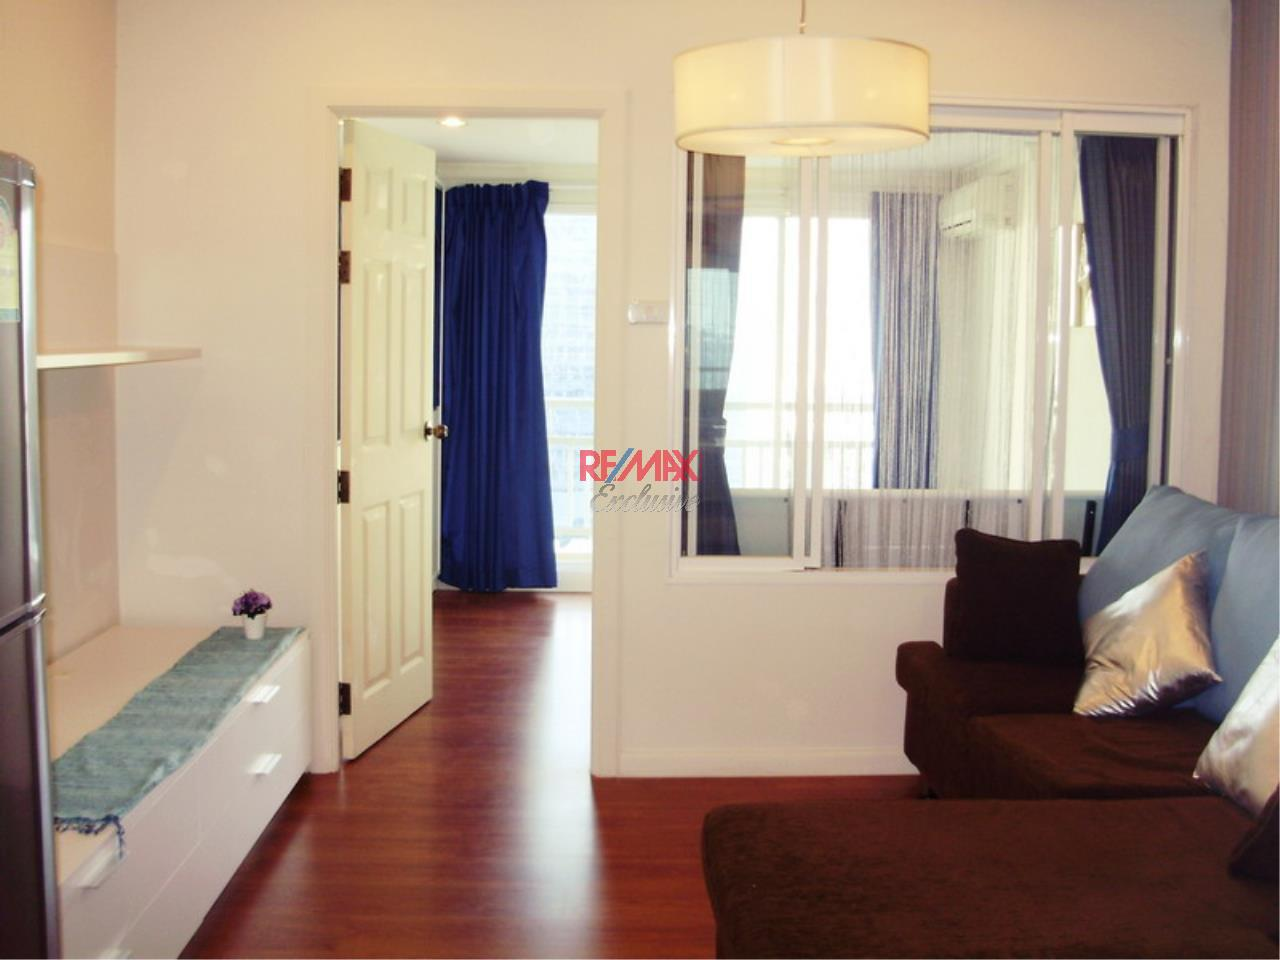 RE/MAX Exclusive Agency's Grand Park View 1 Bedroom nice Decorated for sale 3700000 1